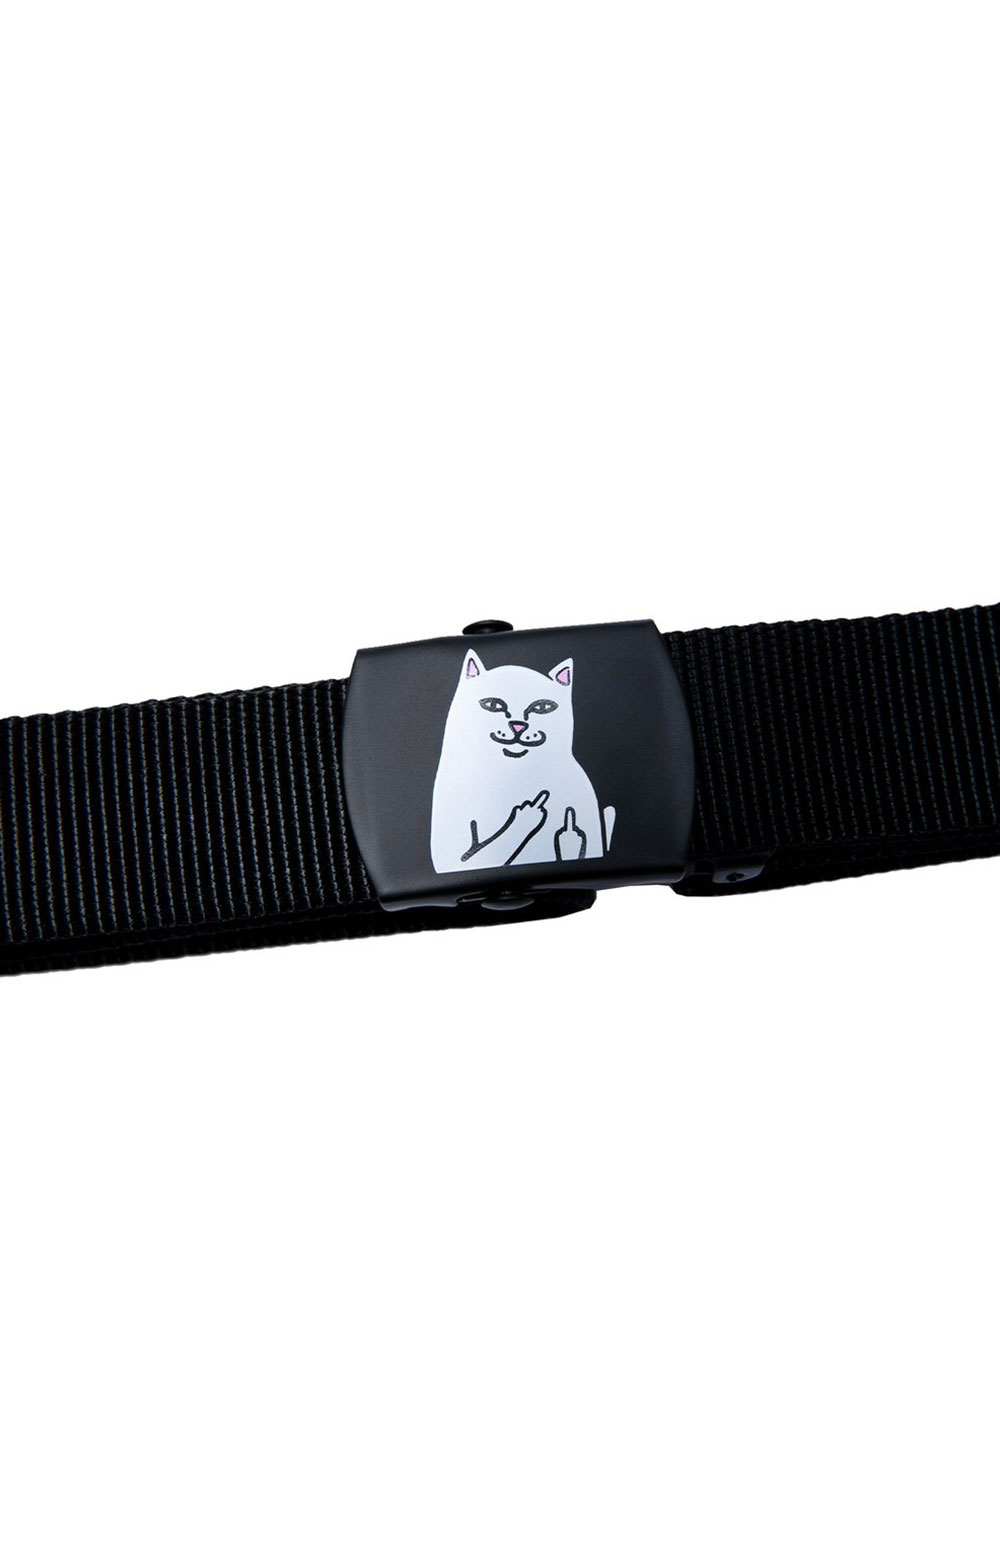 Lord Nermal Web Belt - Black 2